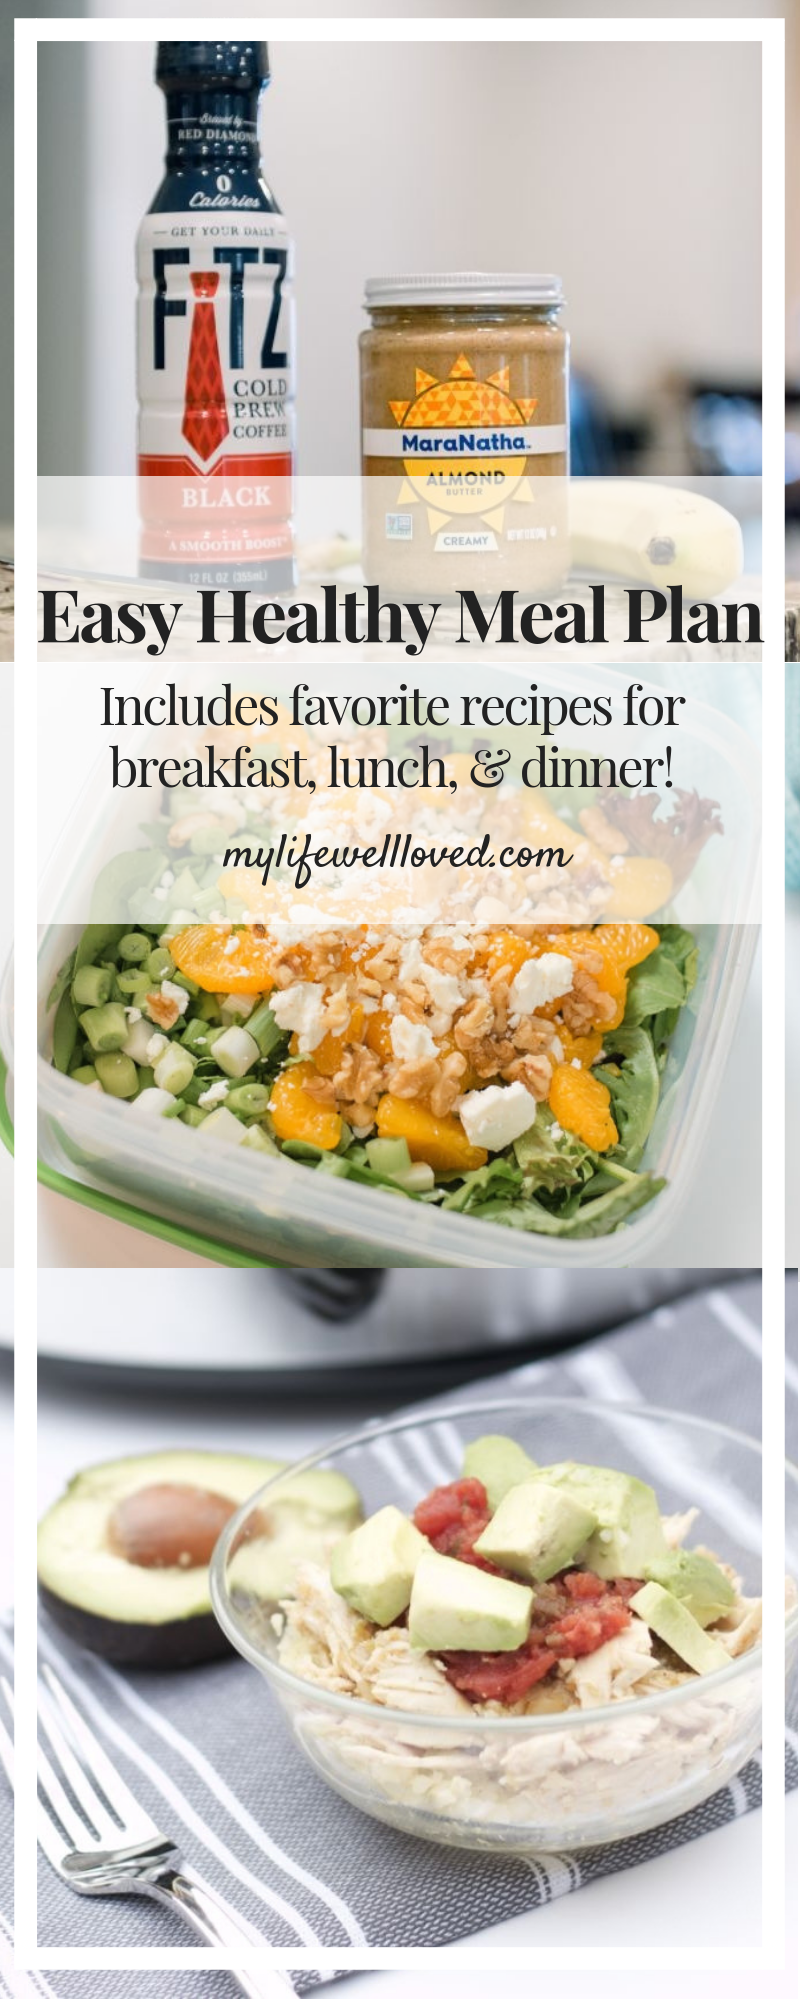 Sharing a sample healthy meal plan for you and your family meal plans! // #mealplan #healthy #fitness #squats #quickmeals